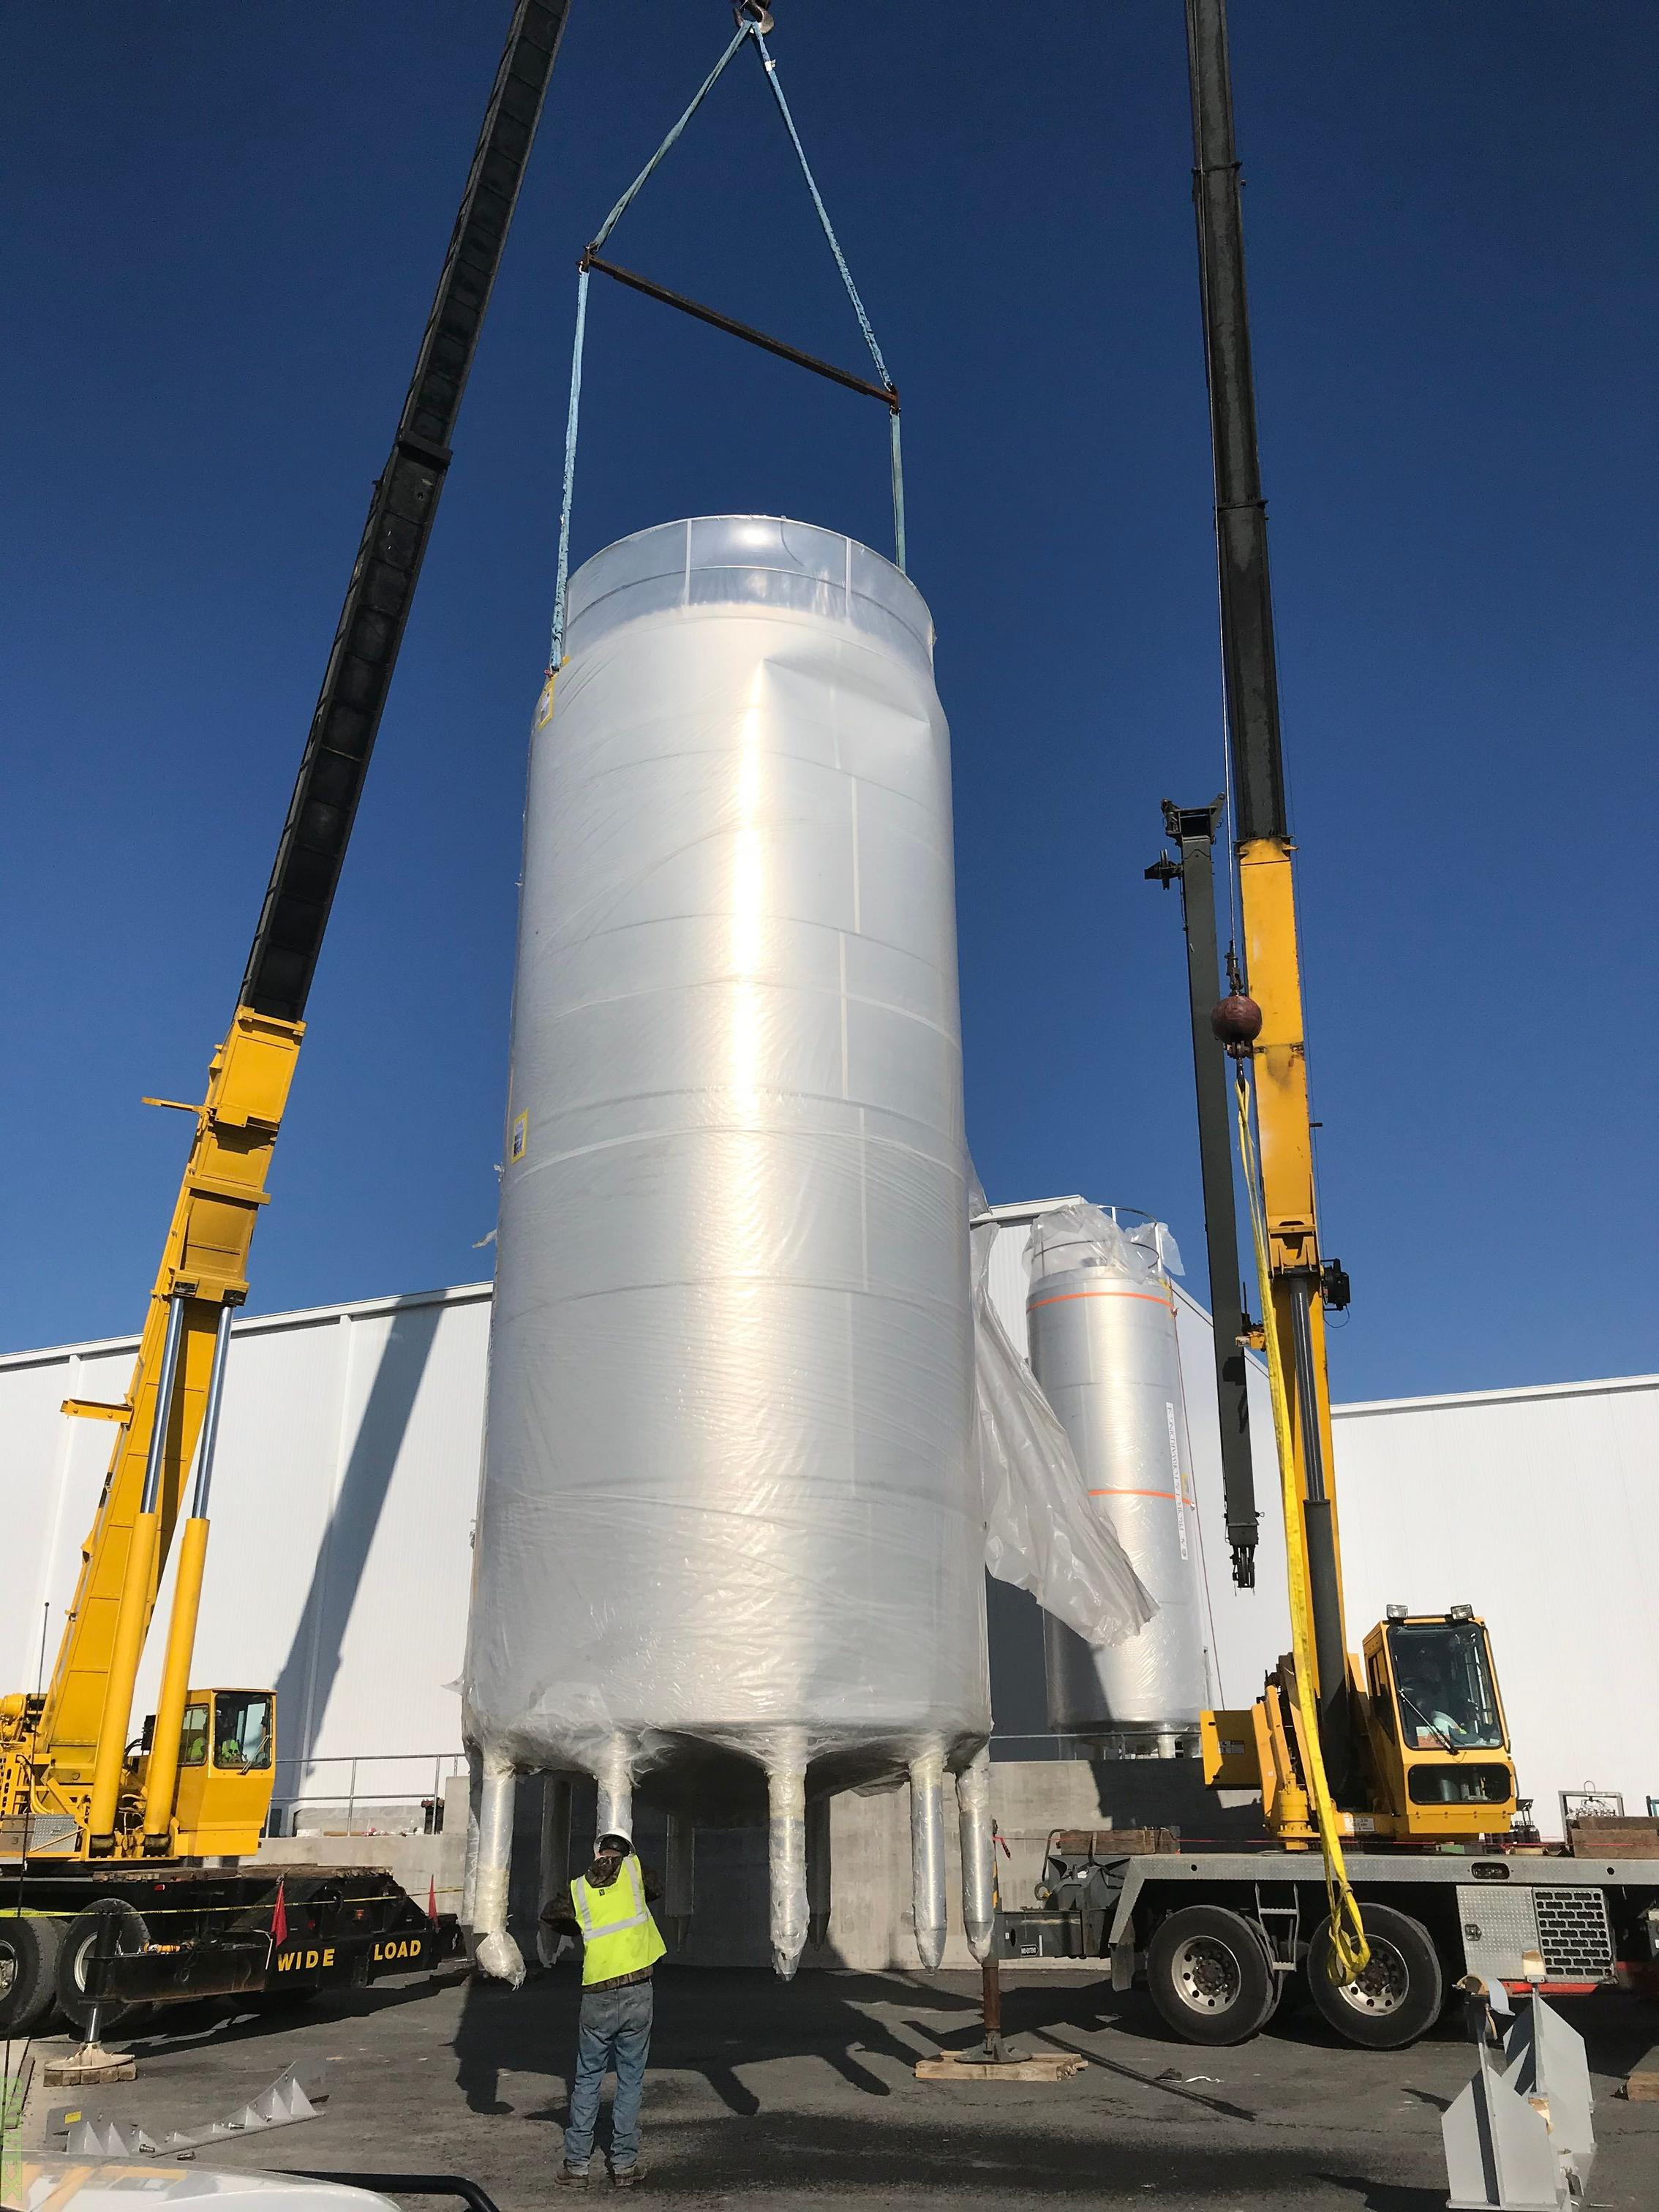 Stainless Steel Tanks (2 Units) - New Condition